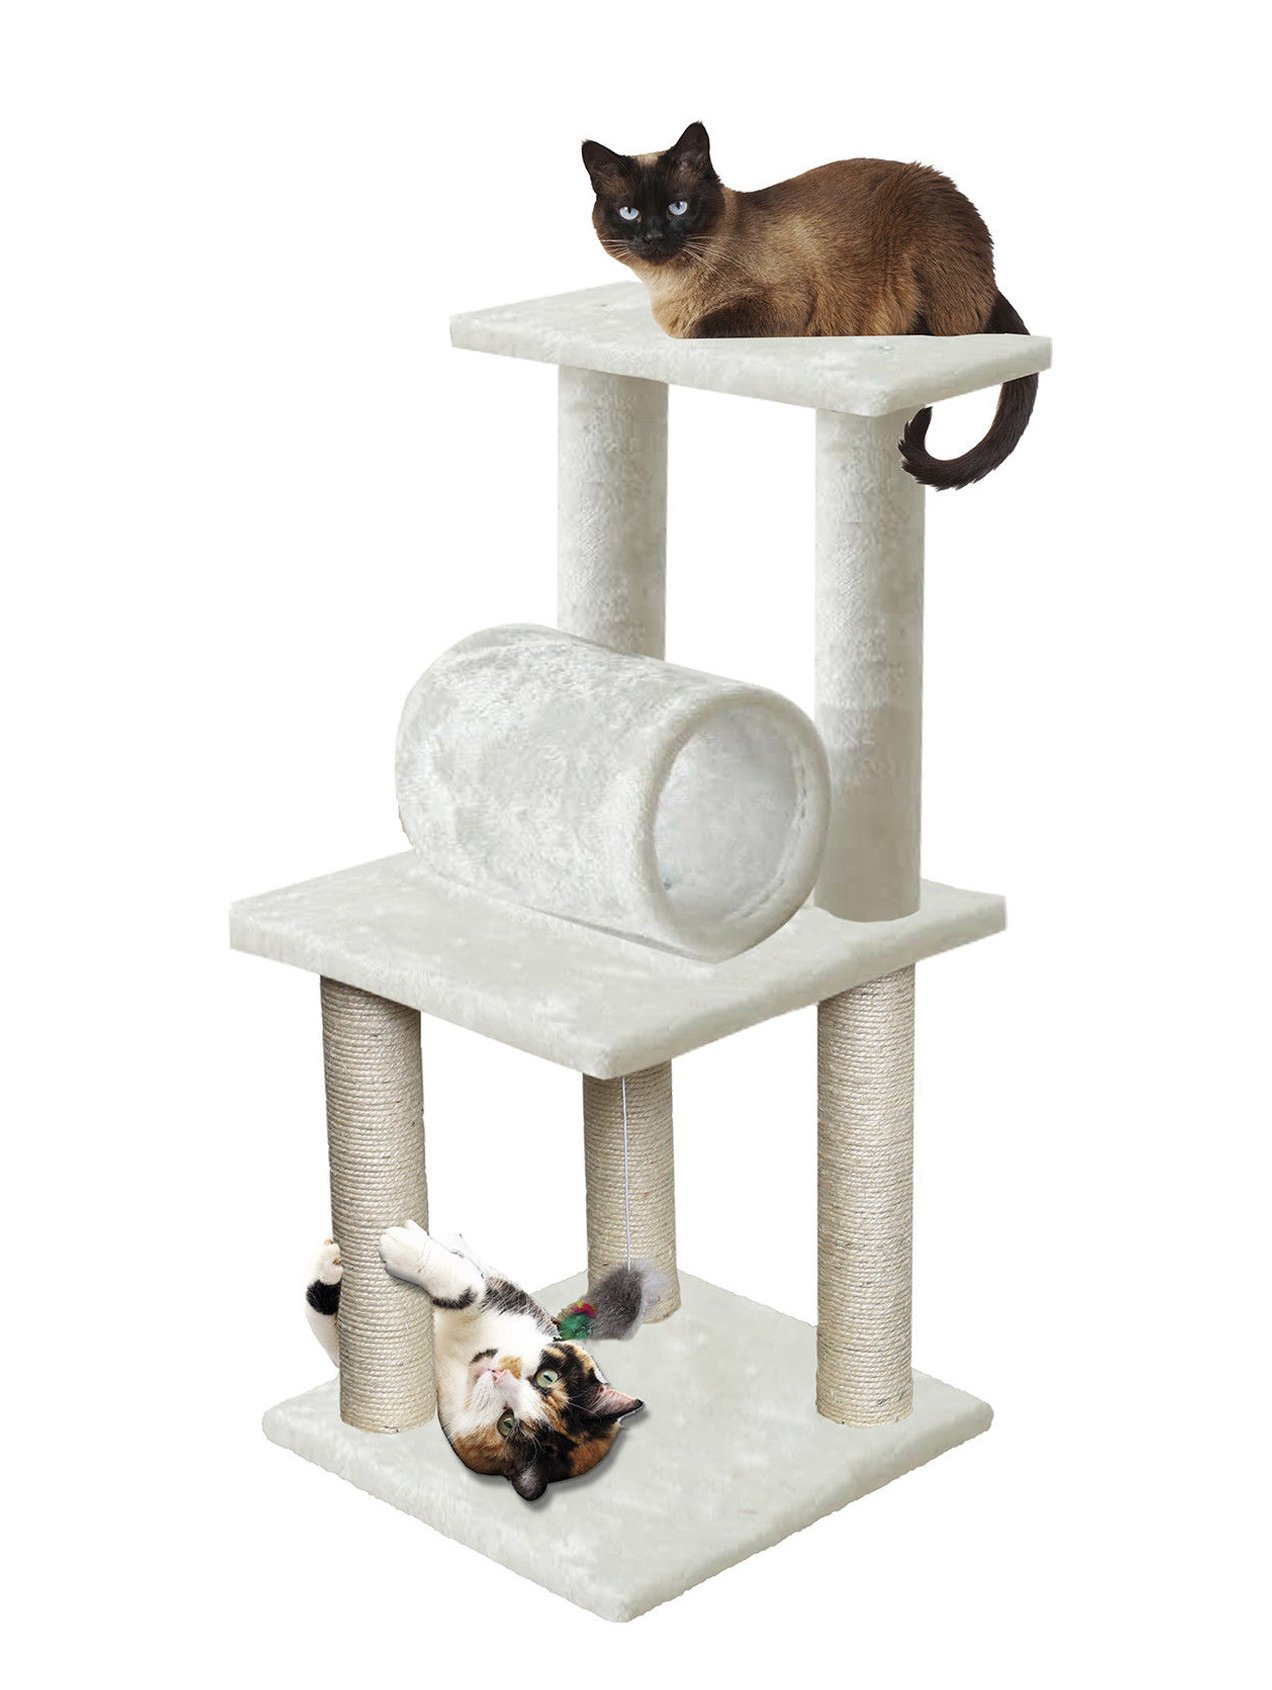 33 White Pet Cat Tree Play Tower Bed Furniture Scratch Post Tunnel Top Mouse toy notch by Unbranded by na (Image #1)